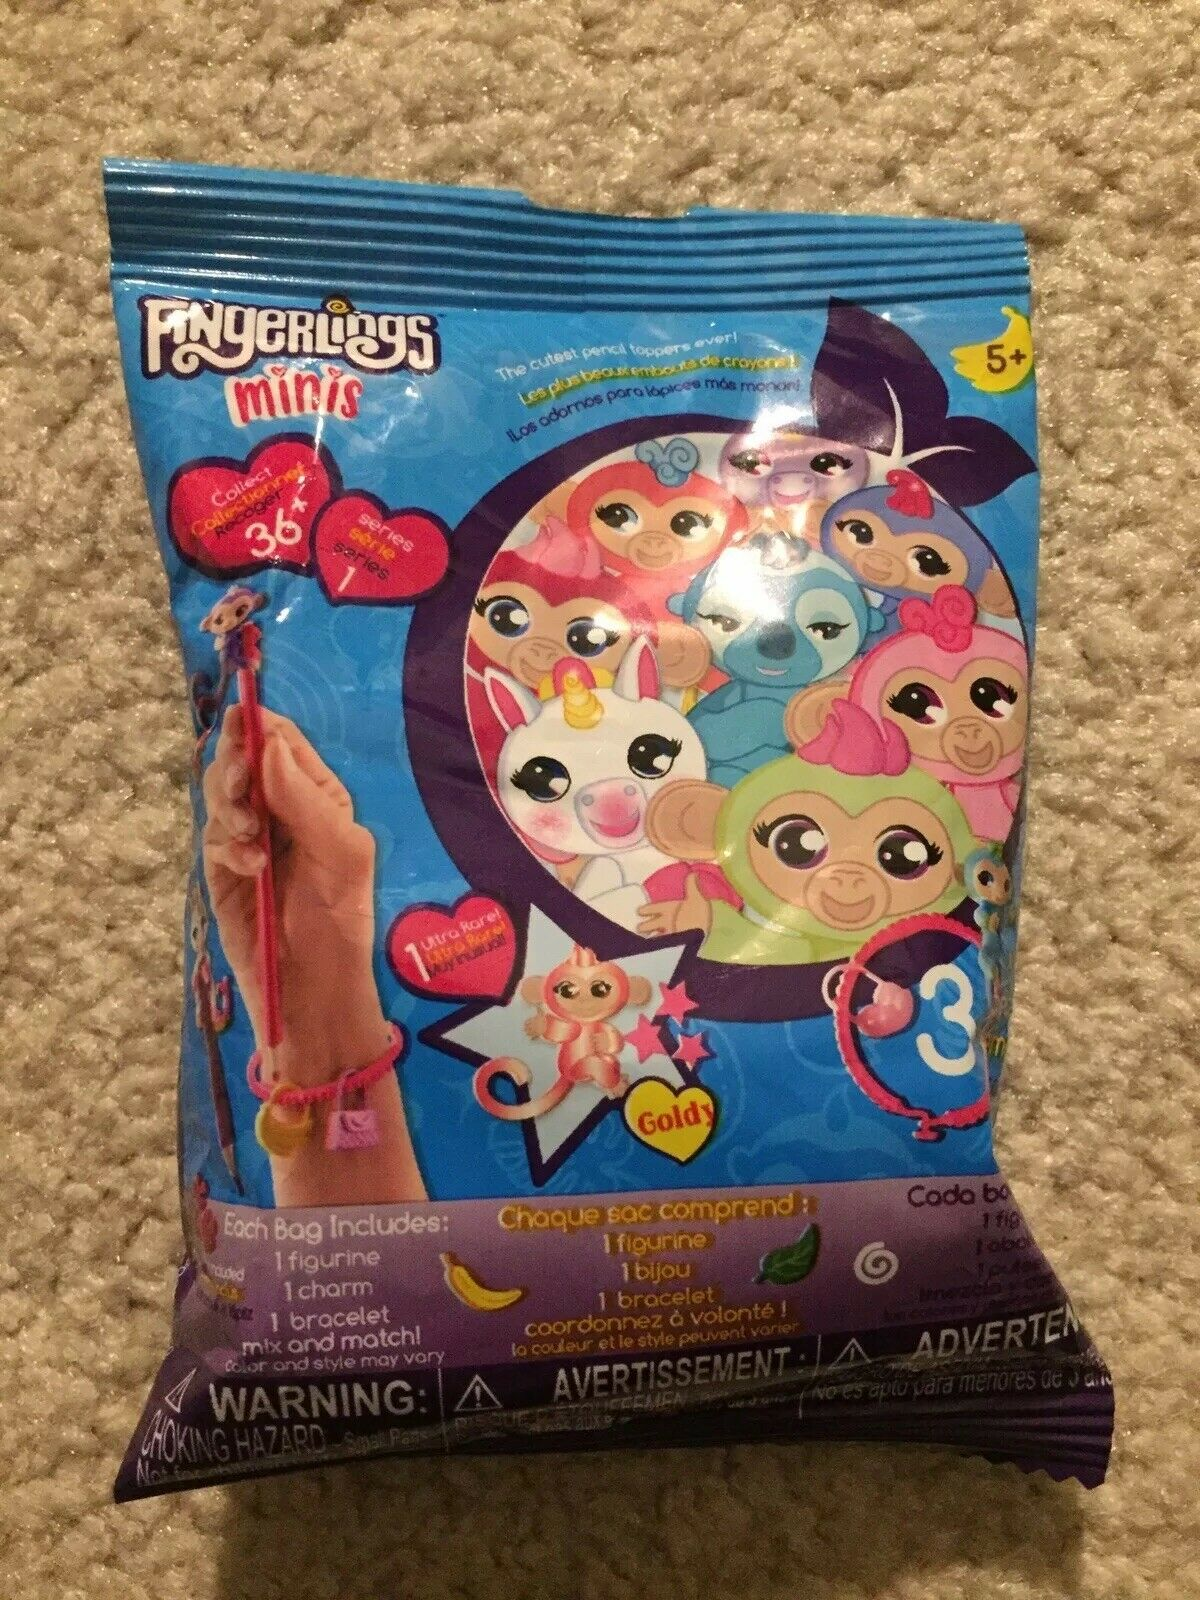 by Wowwee SERIES 1 27c FingerLings minis Blind Bag